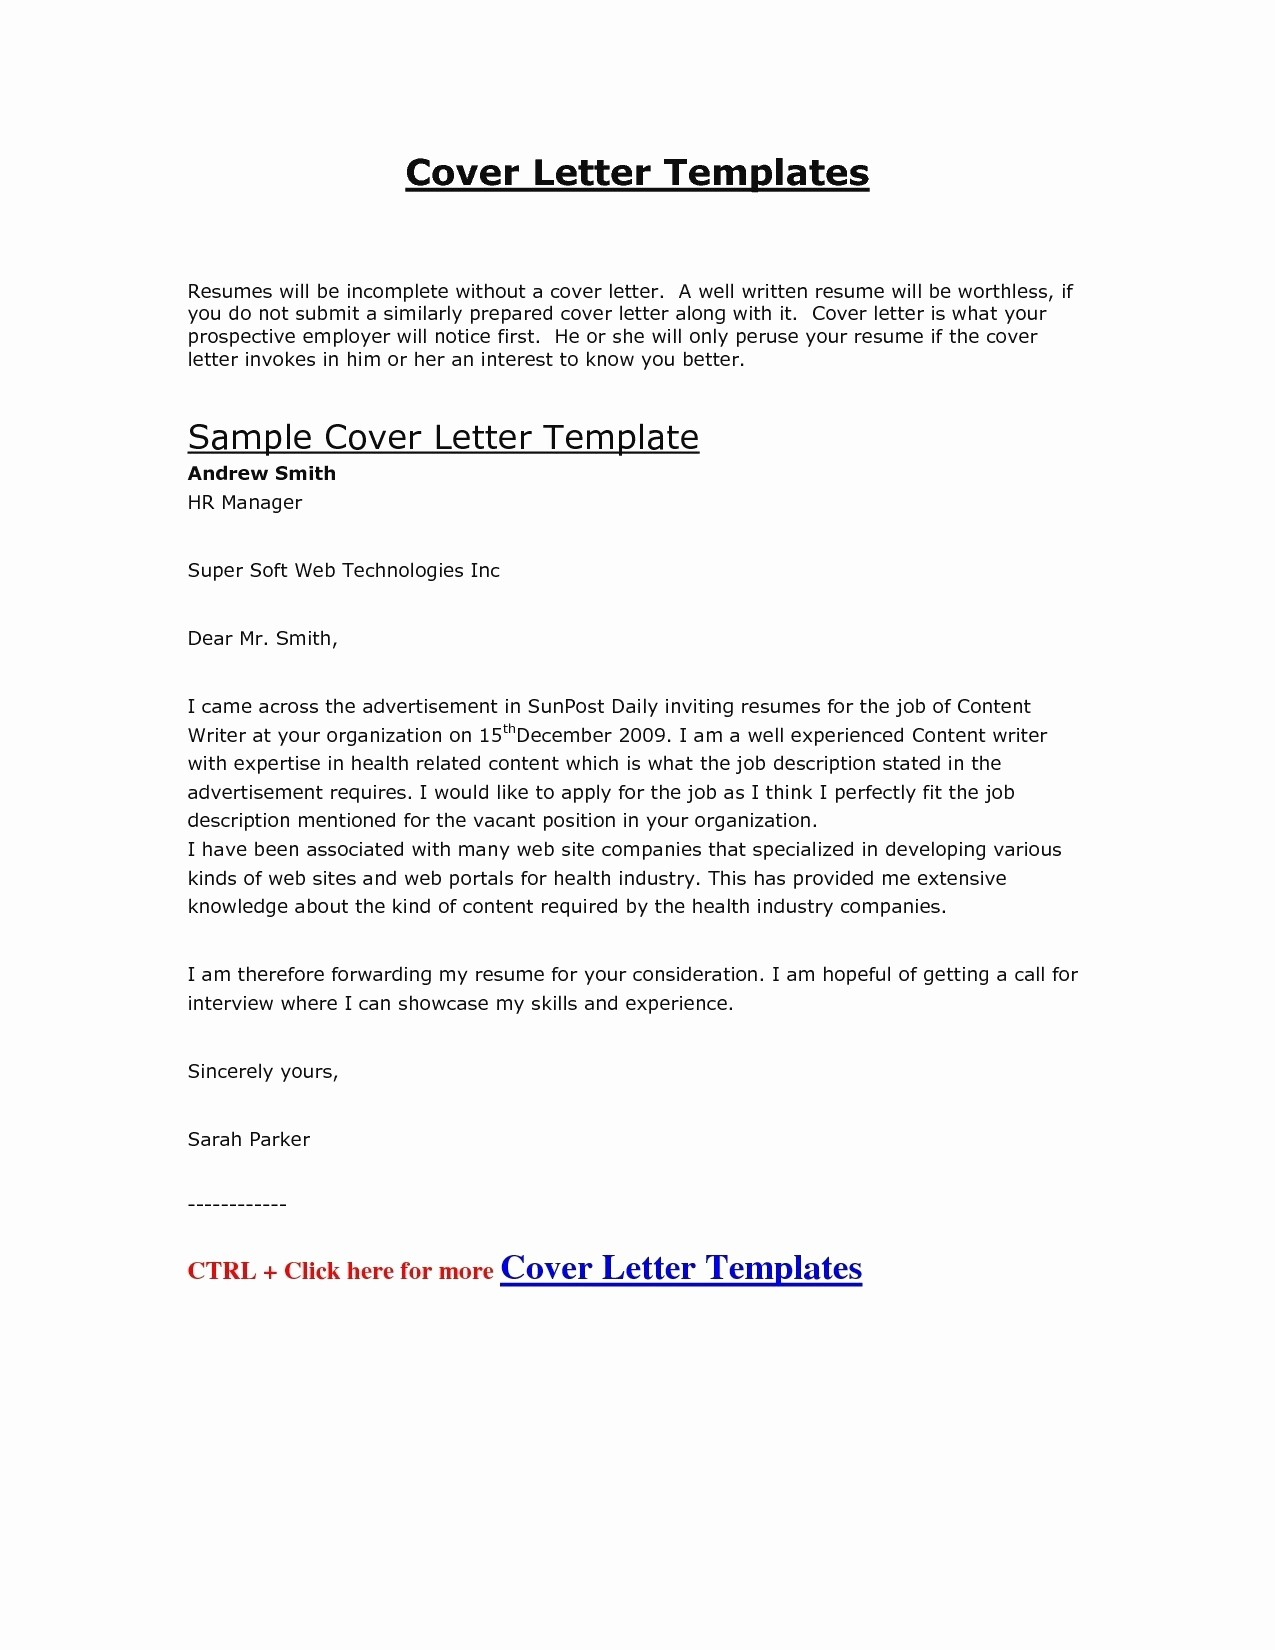 Basic Cover Letter Template - Job Application Letter format Template Copy Cover Letter Template Hr